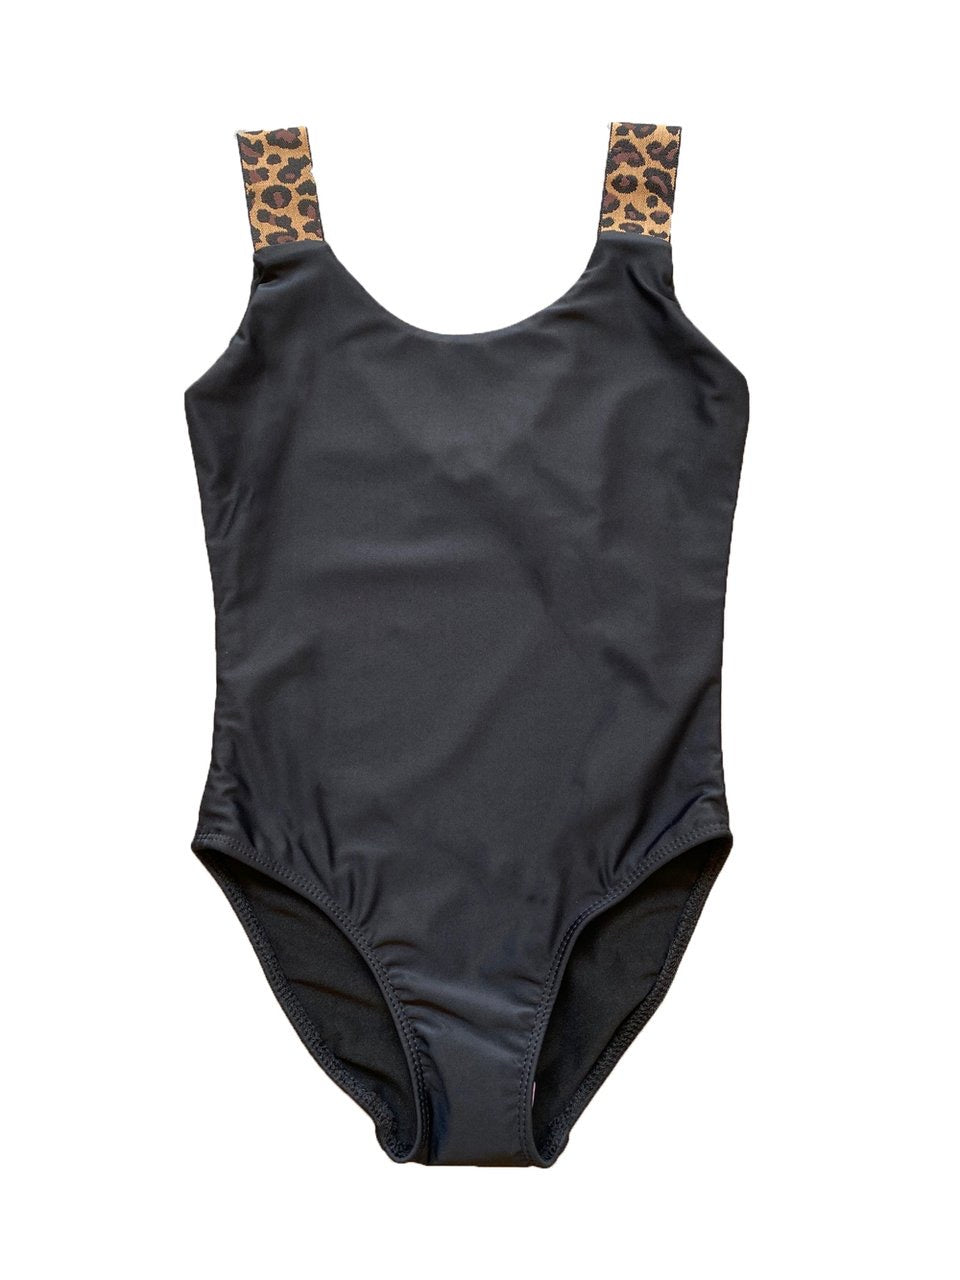 Cheryl Kids One Piece Bathing Suit with Leopard Straps